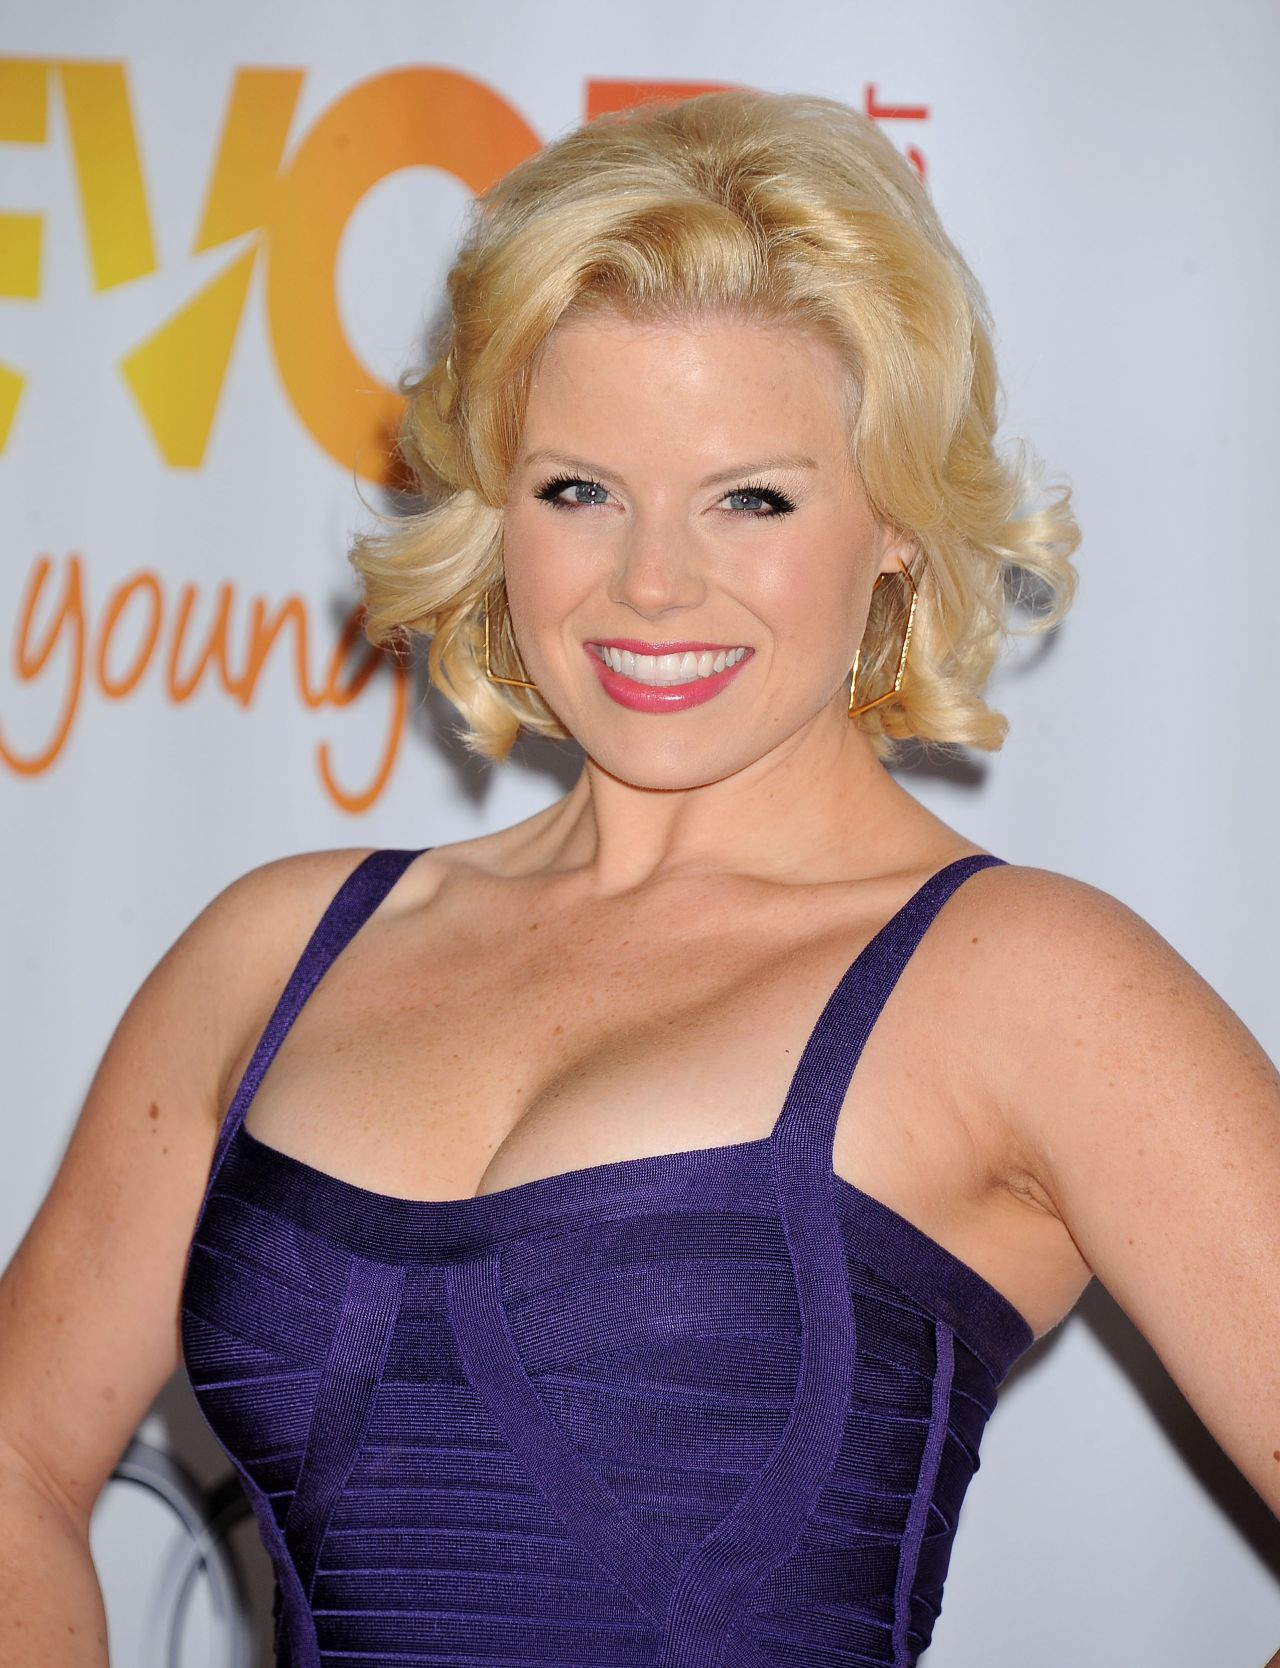 Megan Hilty Atends Trevor Project's 2013 TrevorLIVE Los Angeles Event